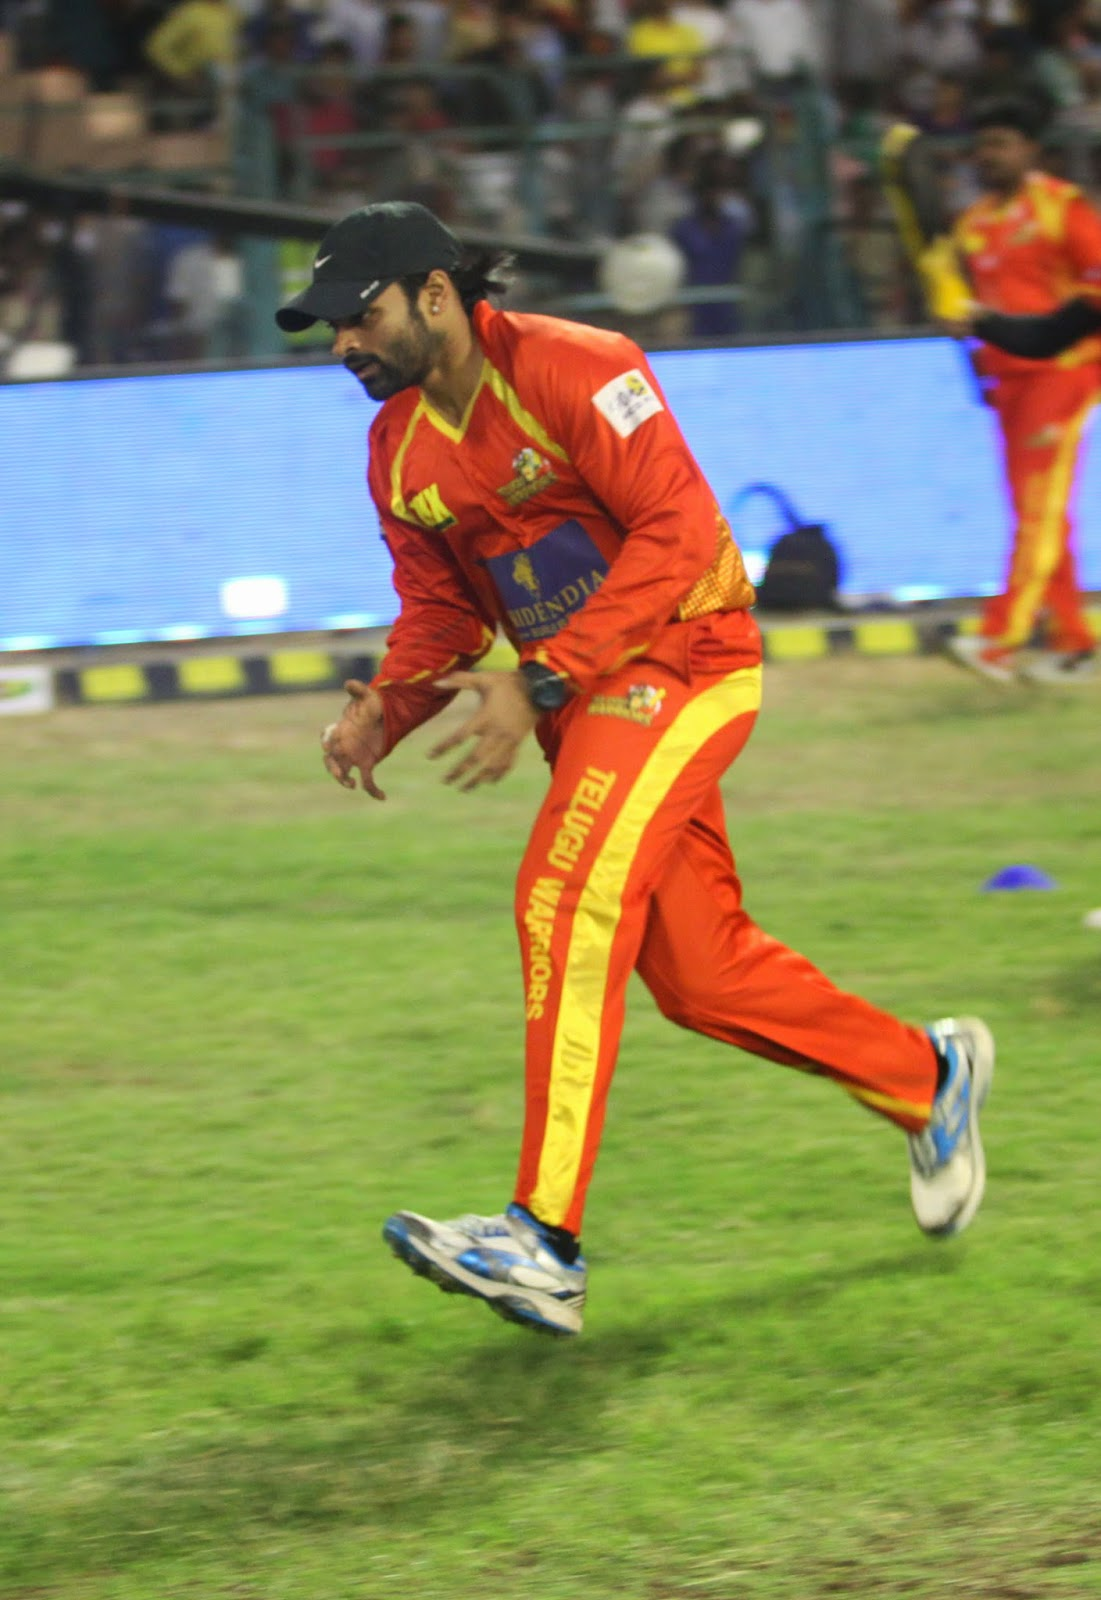 Telugu Warriors Vs Bengal Tigers Match Photos at CCL 5